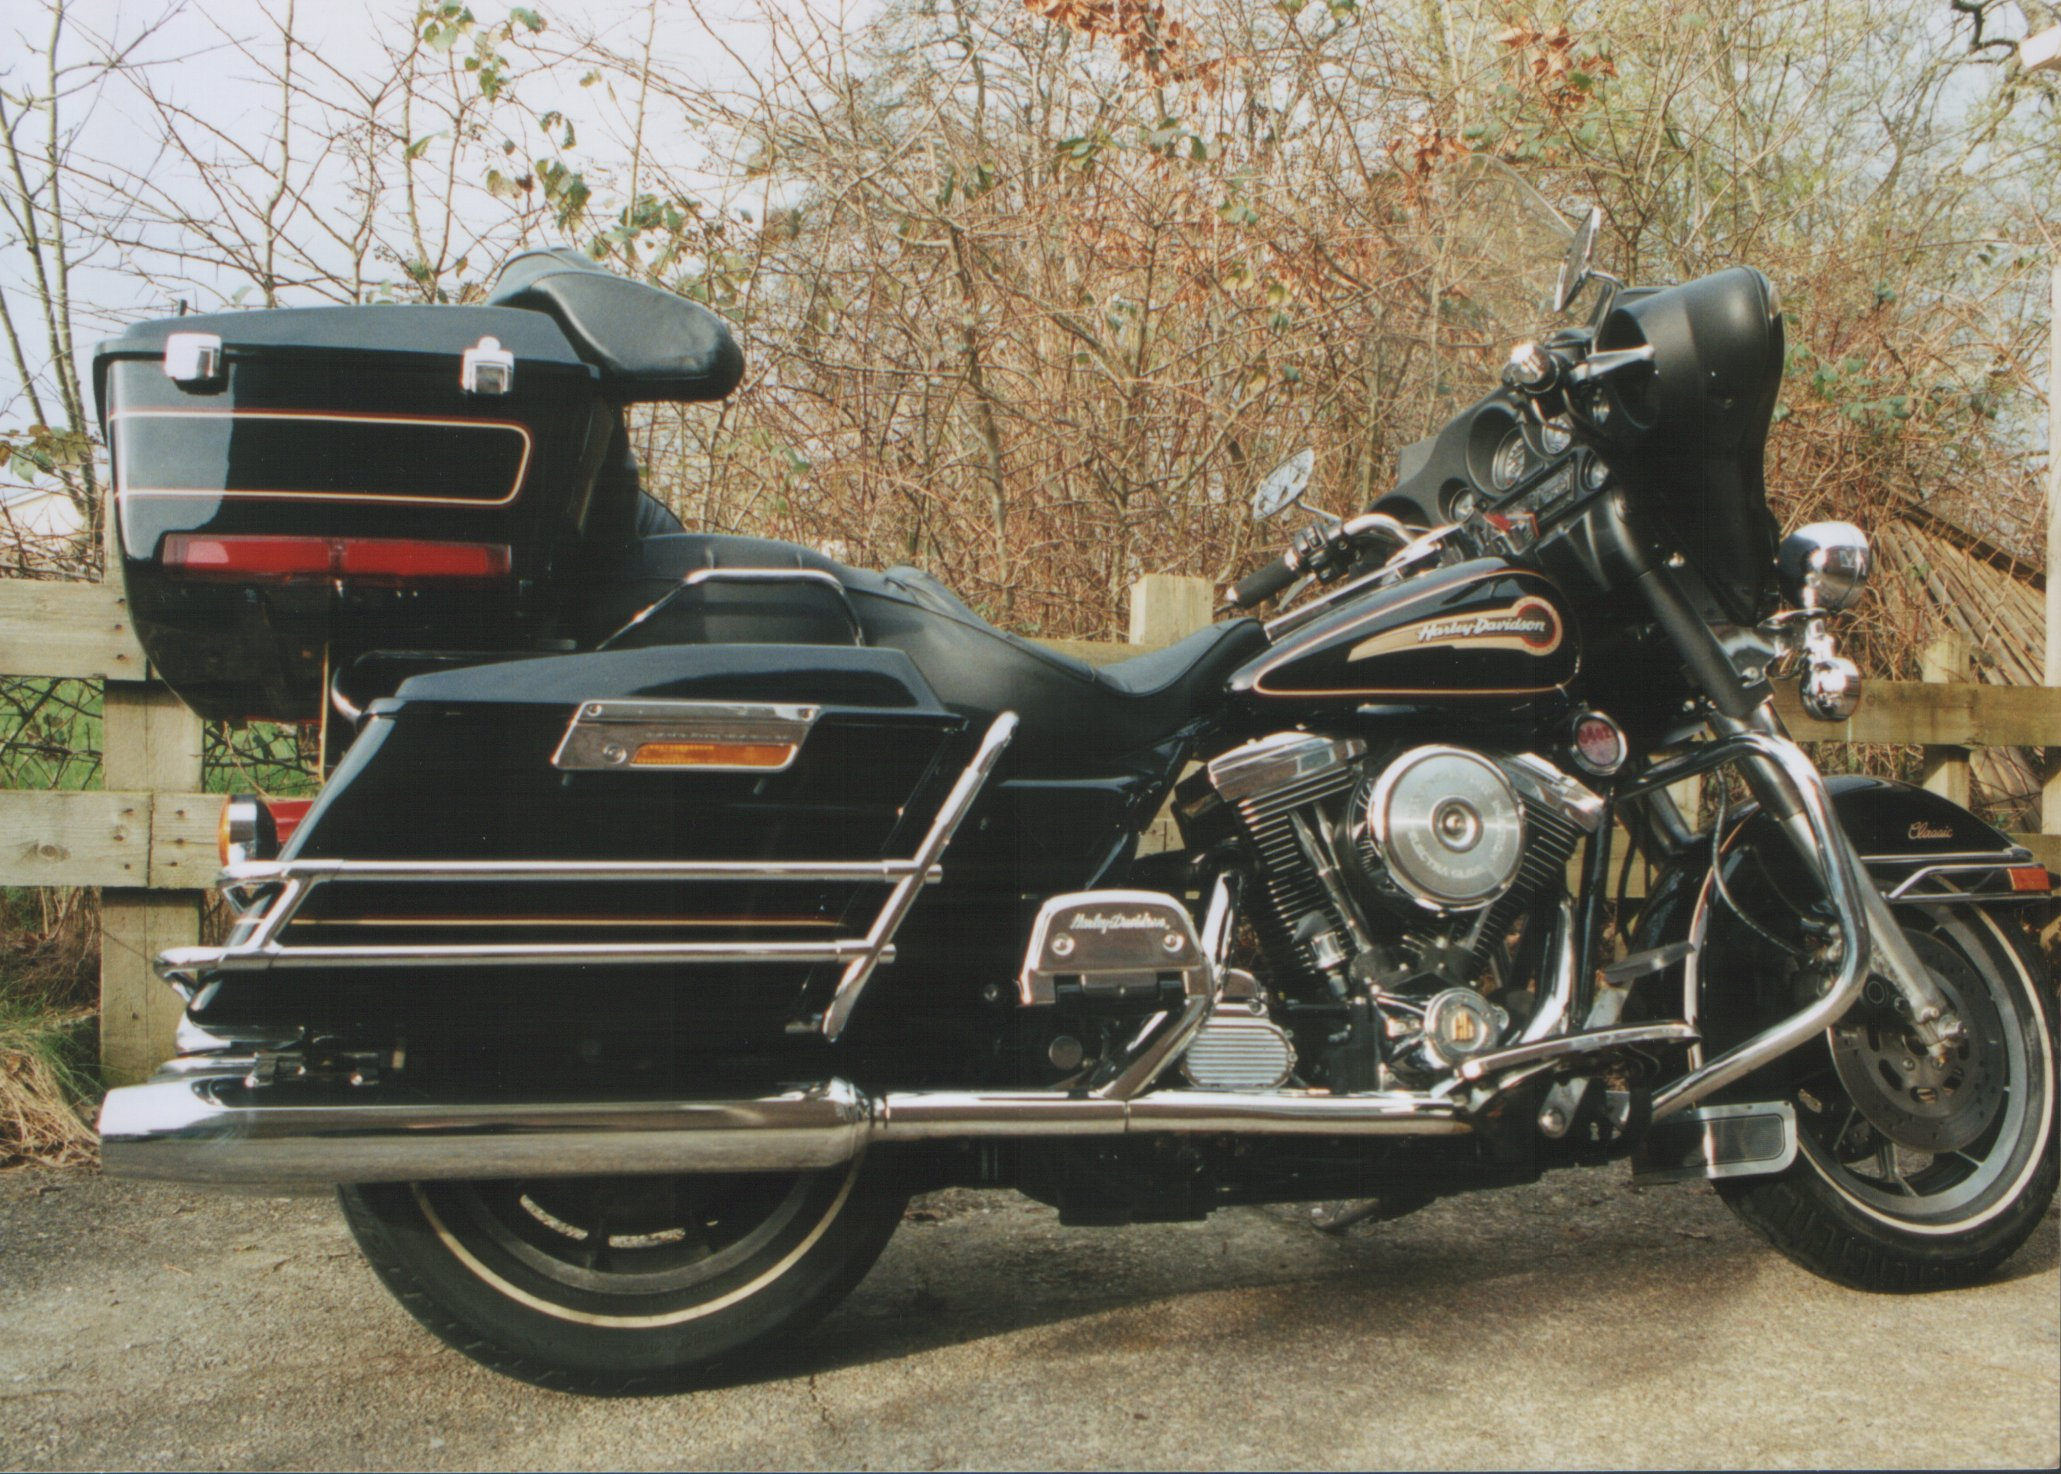 Harley-Davidson FLHTC 1340 Electra Glide Classic 1994 pics #16367